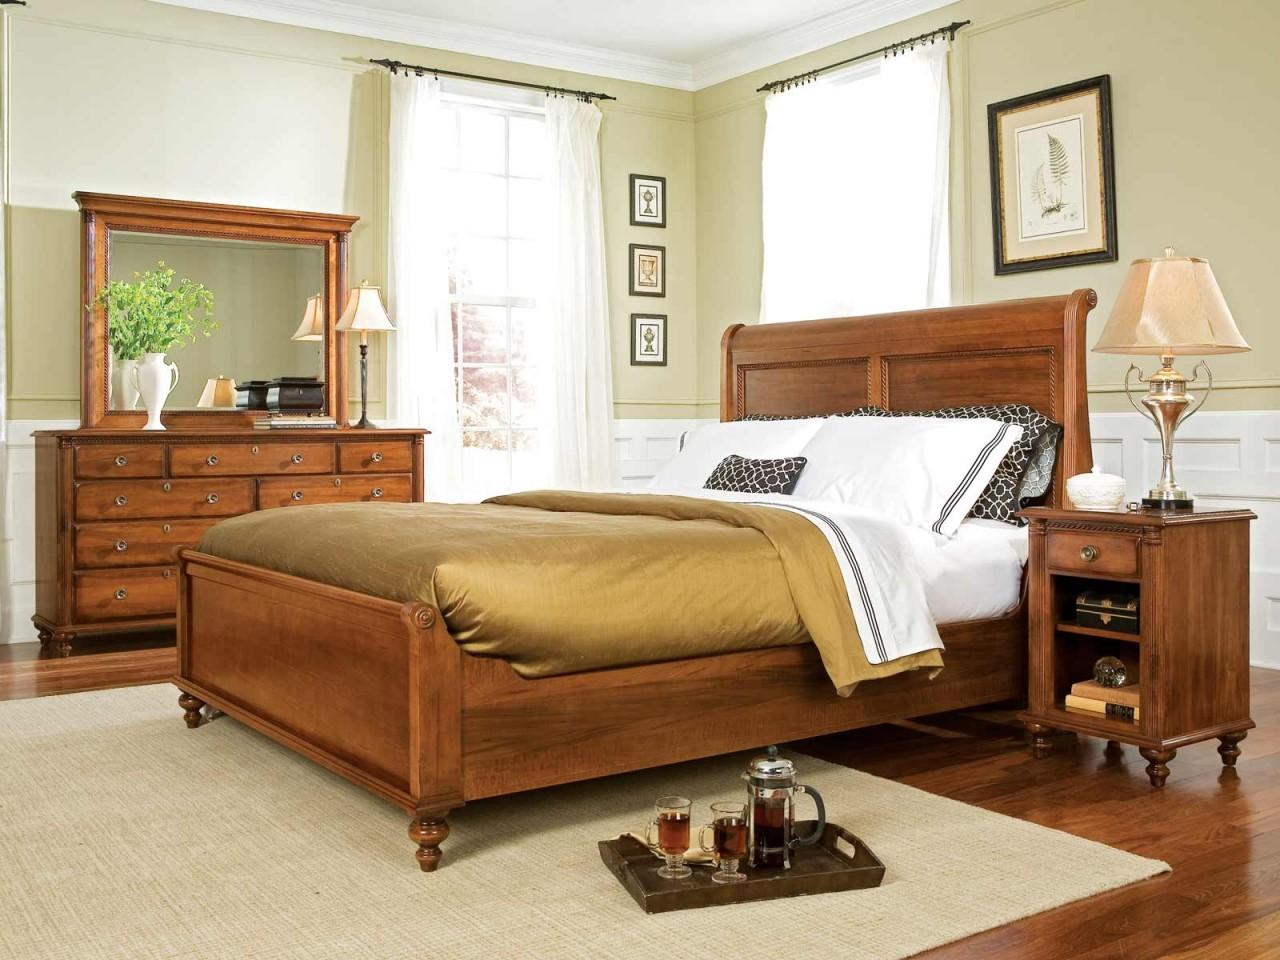 best bedroom sets 32 bedroom furniture sets ideas and designs 10828